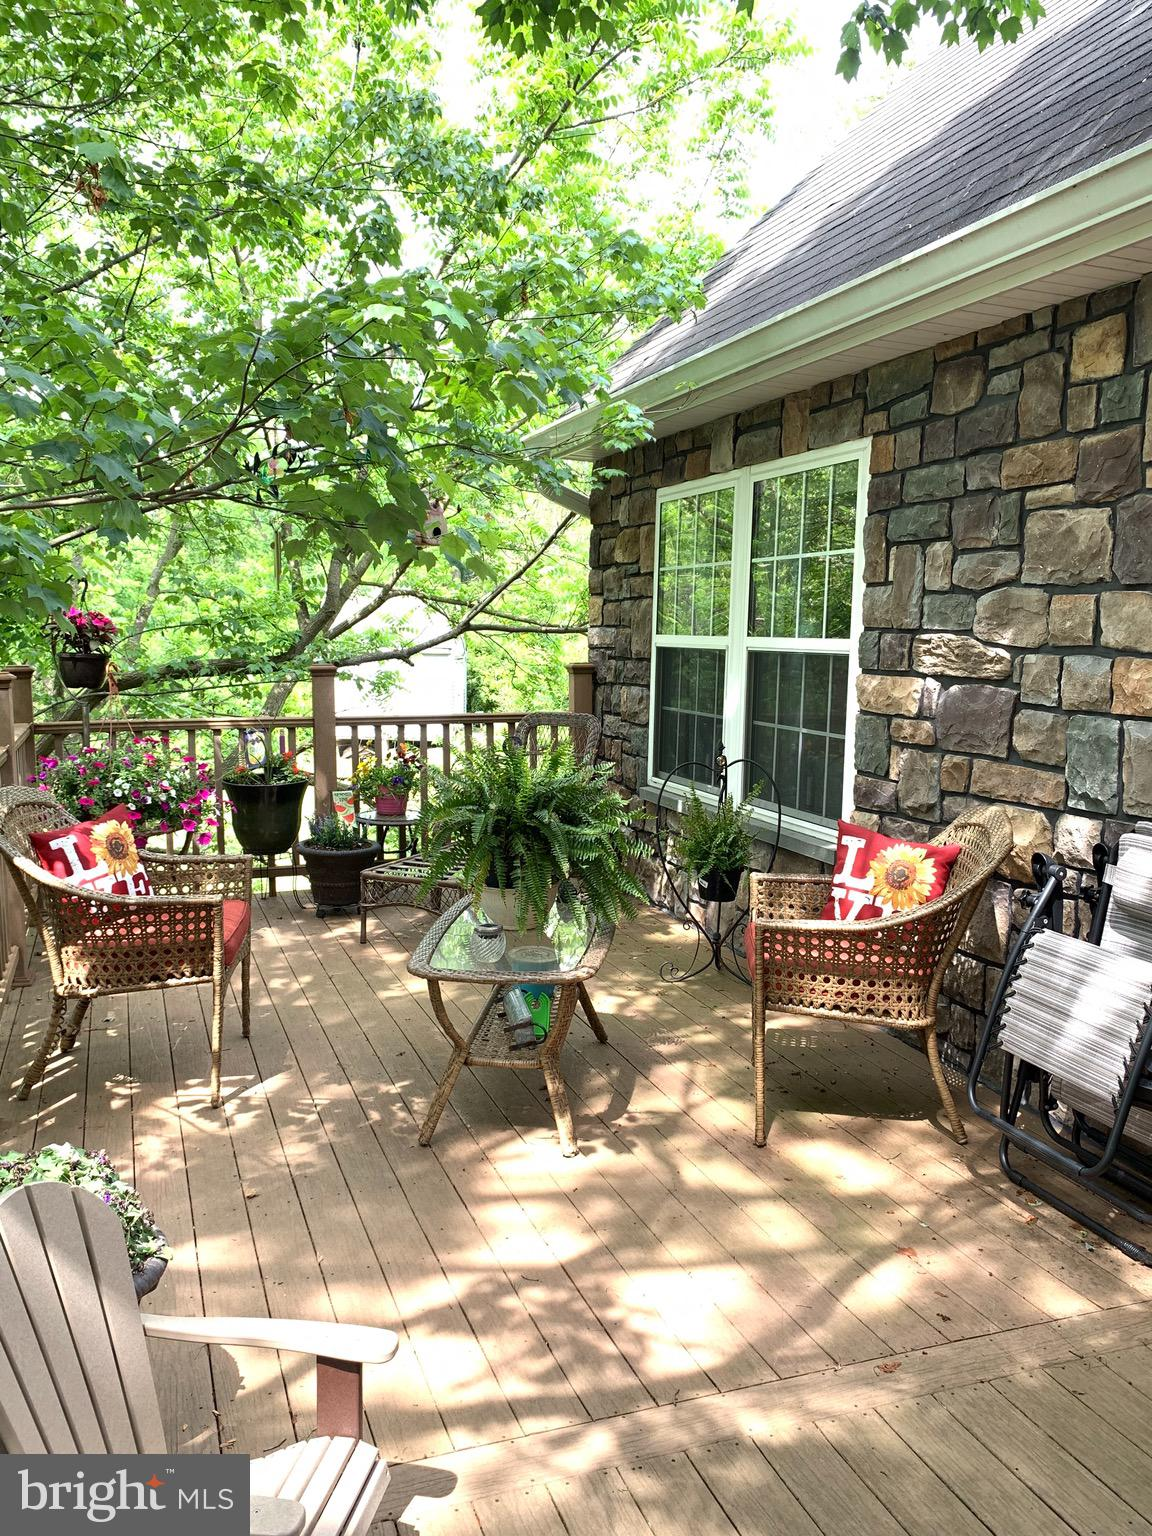 WANT A GREAT HIDEAWAY?  USDA Financing Approved Area!  Open up the Windows to the Country Breezes!